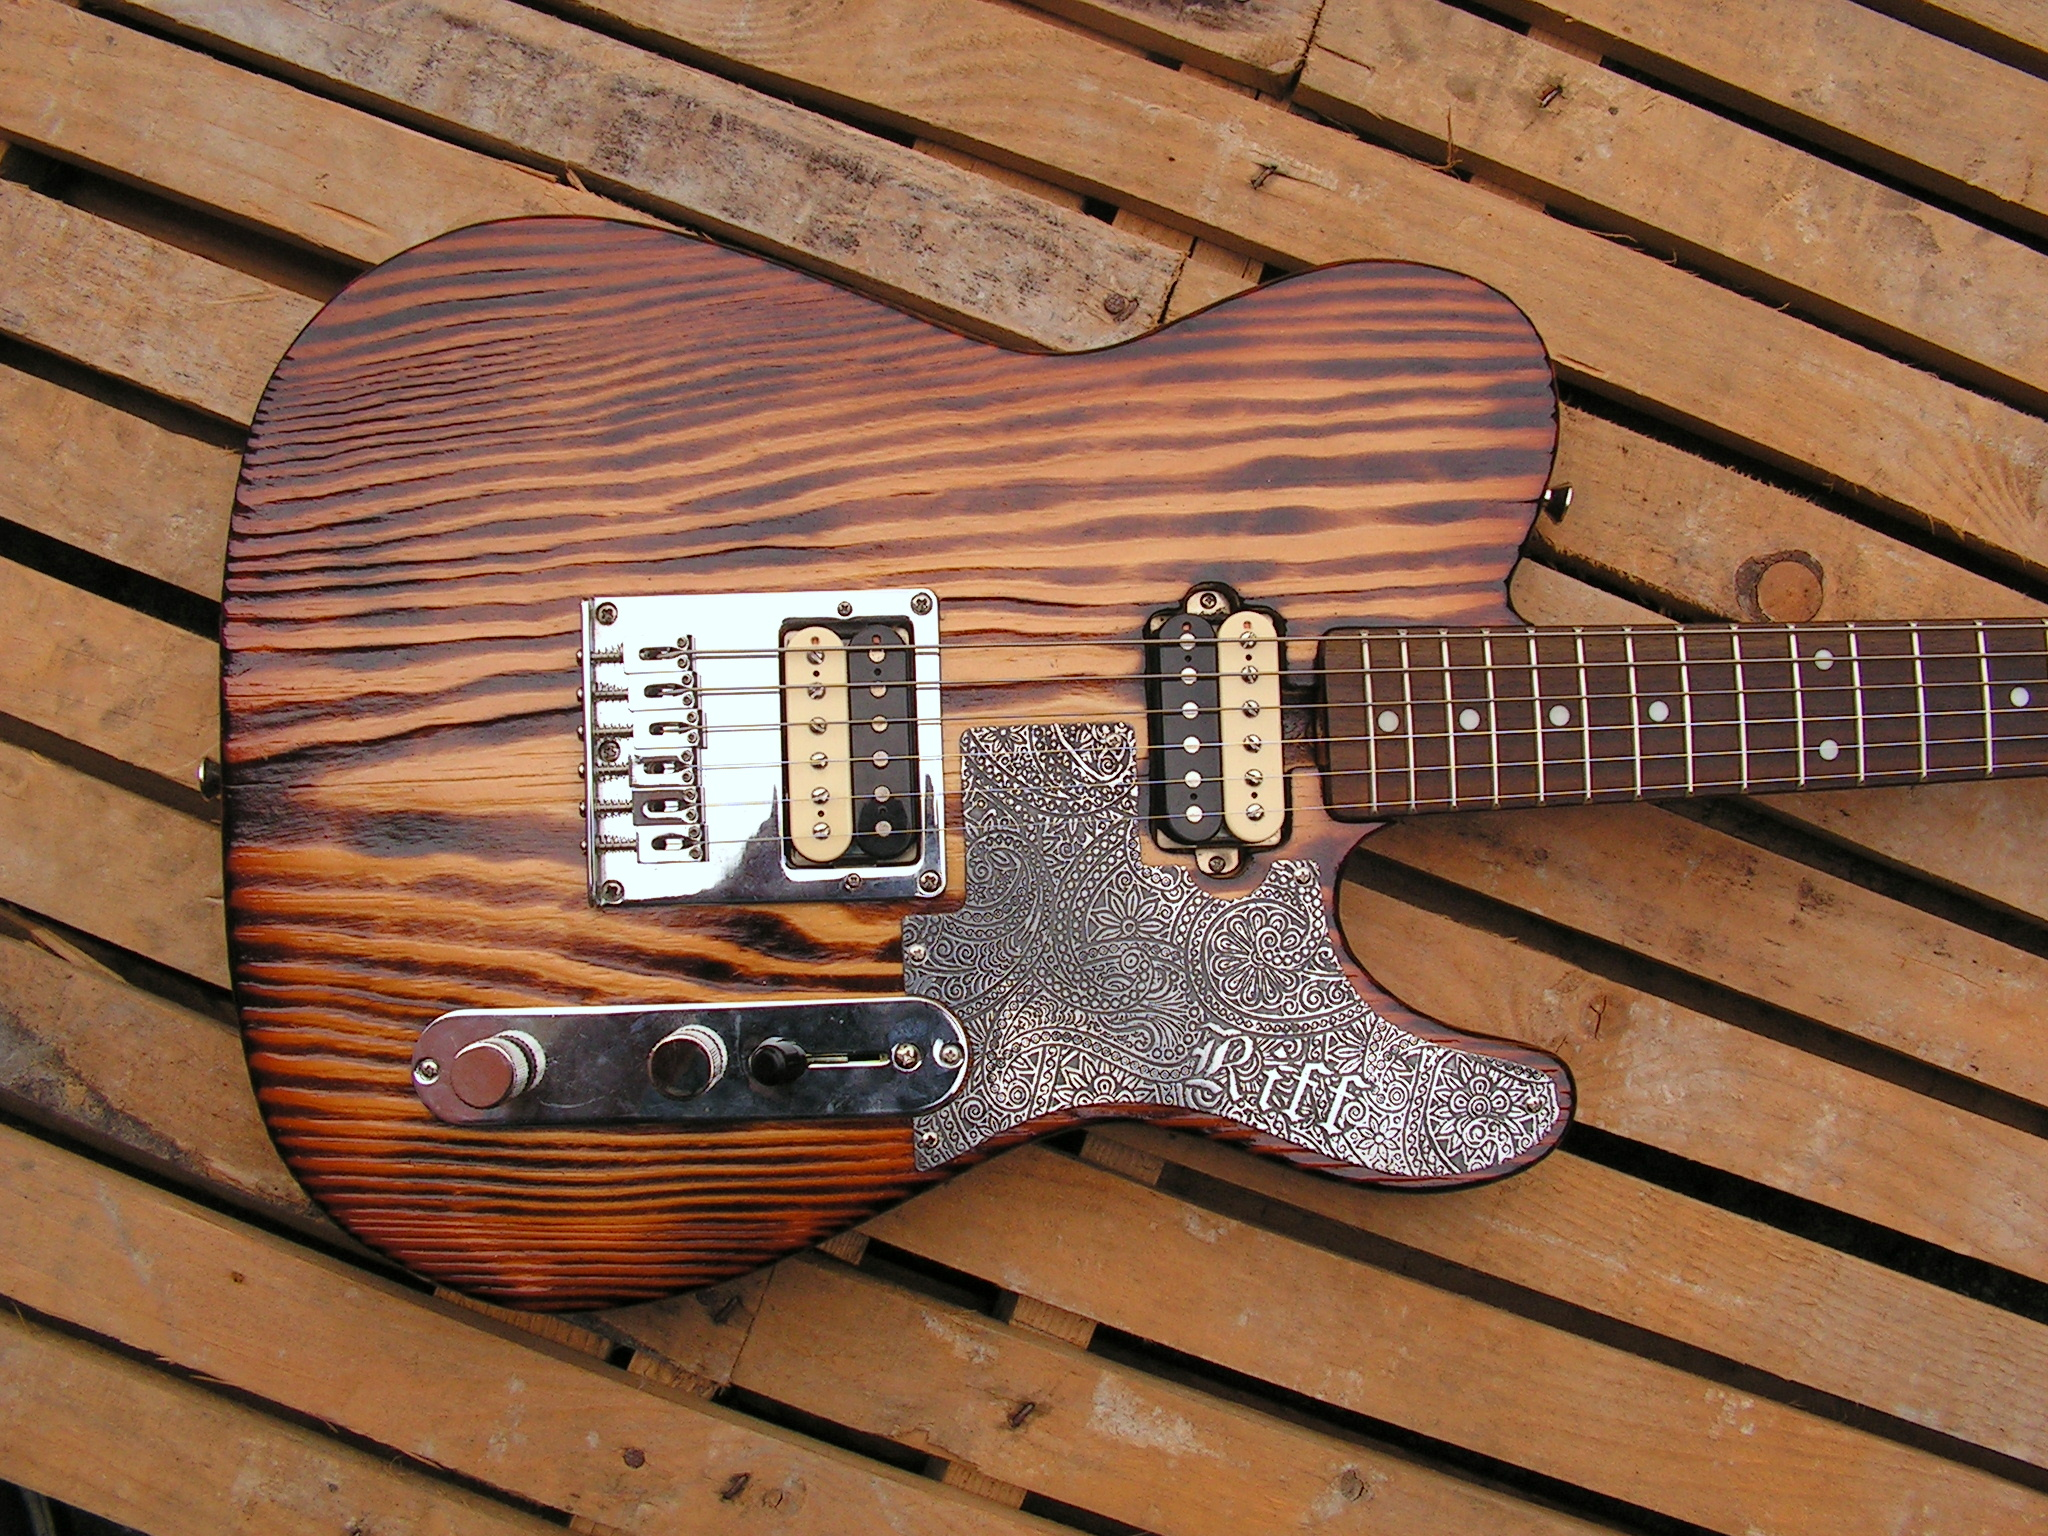 Body di una chitarra Telecaster in yellow pine roasted